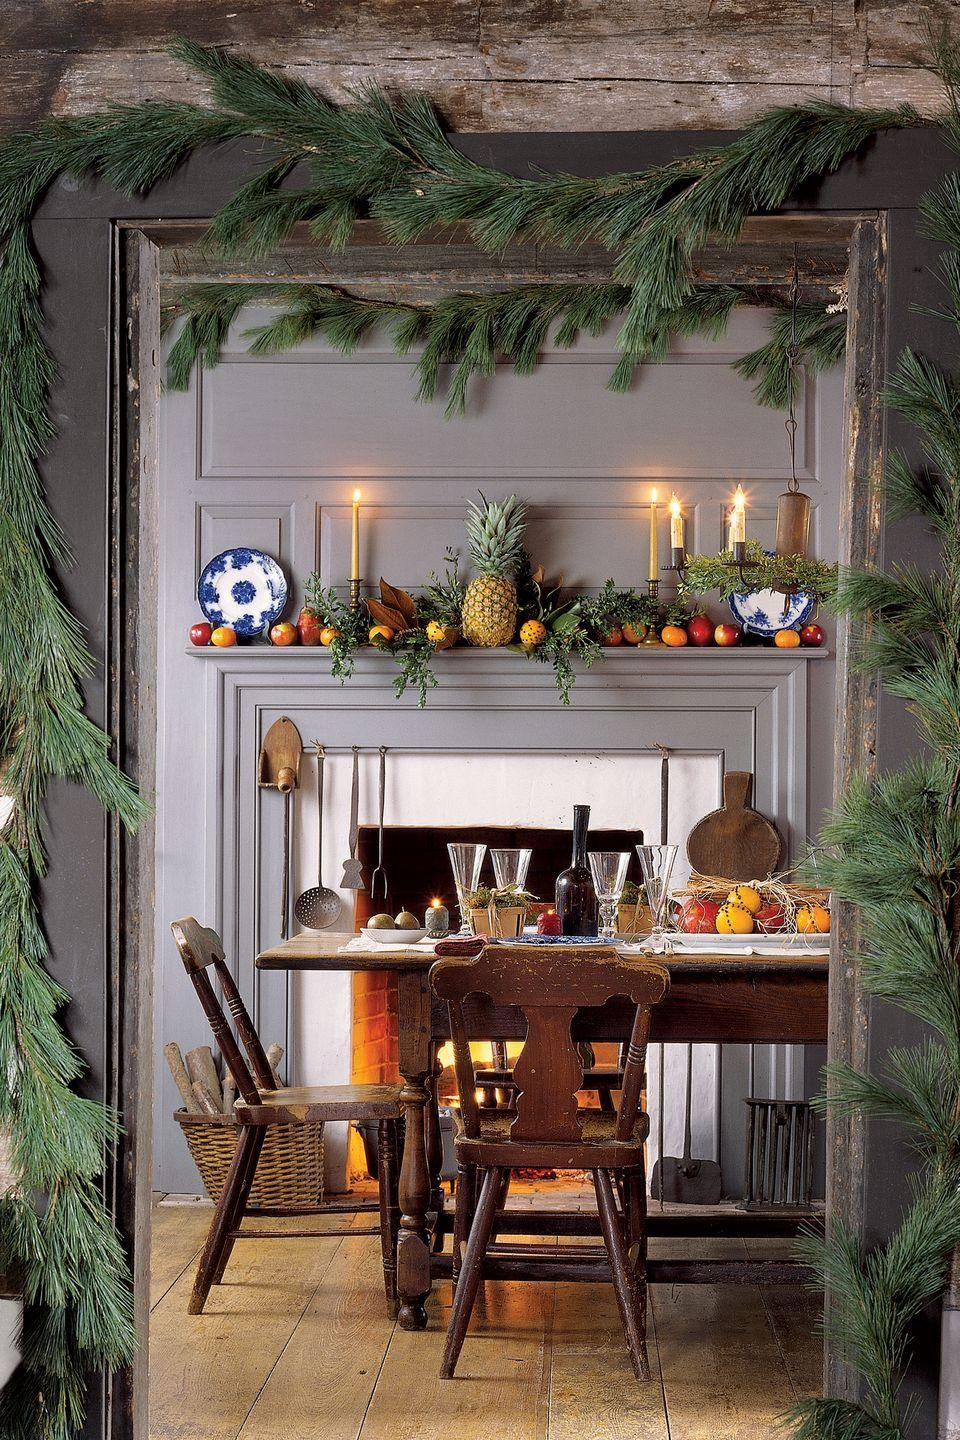 "<p>Evocative and soothing, candlelight creates the right ambience for the holidays. Lit candles are more than decorative objects, highlighting seasonal festivities and fostering a celebratory mood. Garlands around the door frame beckon guests into the room, and on the mantel sits a pineapple, an early-American symbol of hospitality.</p><p><a class=""link rapid-noclick-resp"" href=""https://www.amazon.com/s/ref=nb_sb_noss_1?url=search-alias%3Daps&field-keywords=garlands&rh=i%3Aaps%2Ck%3Agarlands&tag=syn-yahoo-20&ascsubtag=%5Bartid%7C10050.g.644%5Bsrc%7Cyahoo-us"" rel=""nofollow noopener"" target=""_blank"" data-ylk=""slk:SHOP GARLAND"">SHOP GARLAND</a></p>"